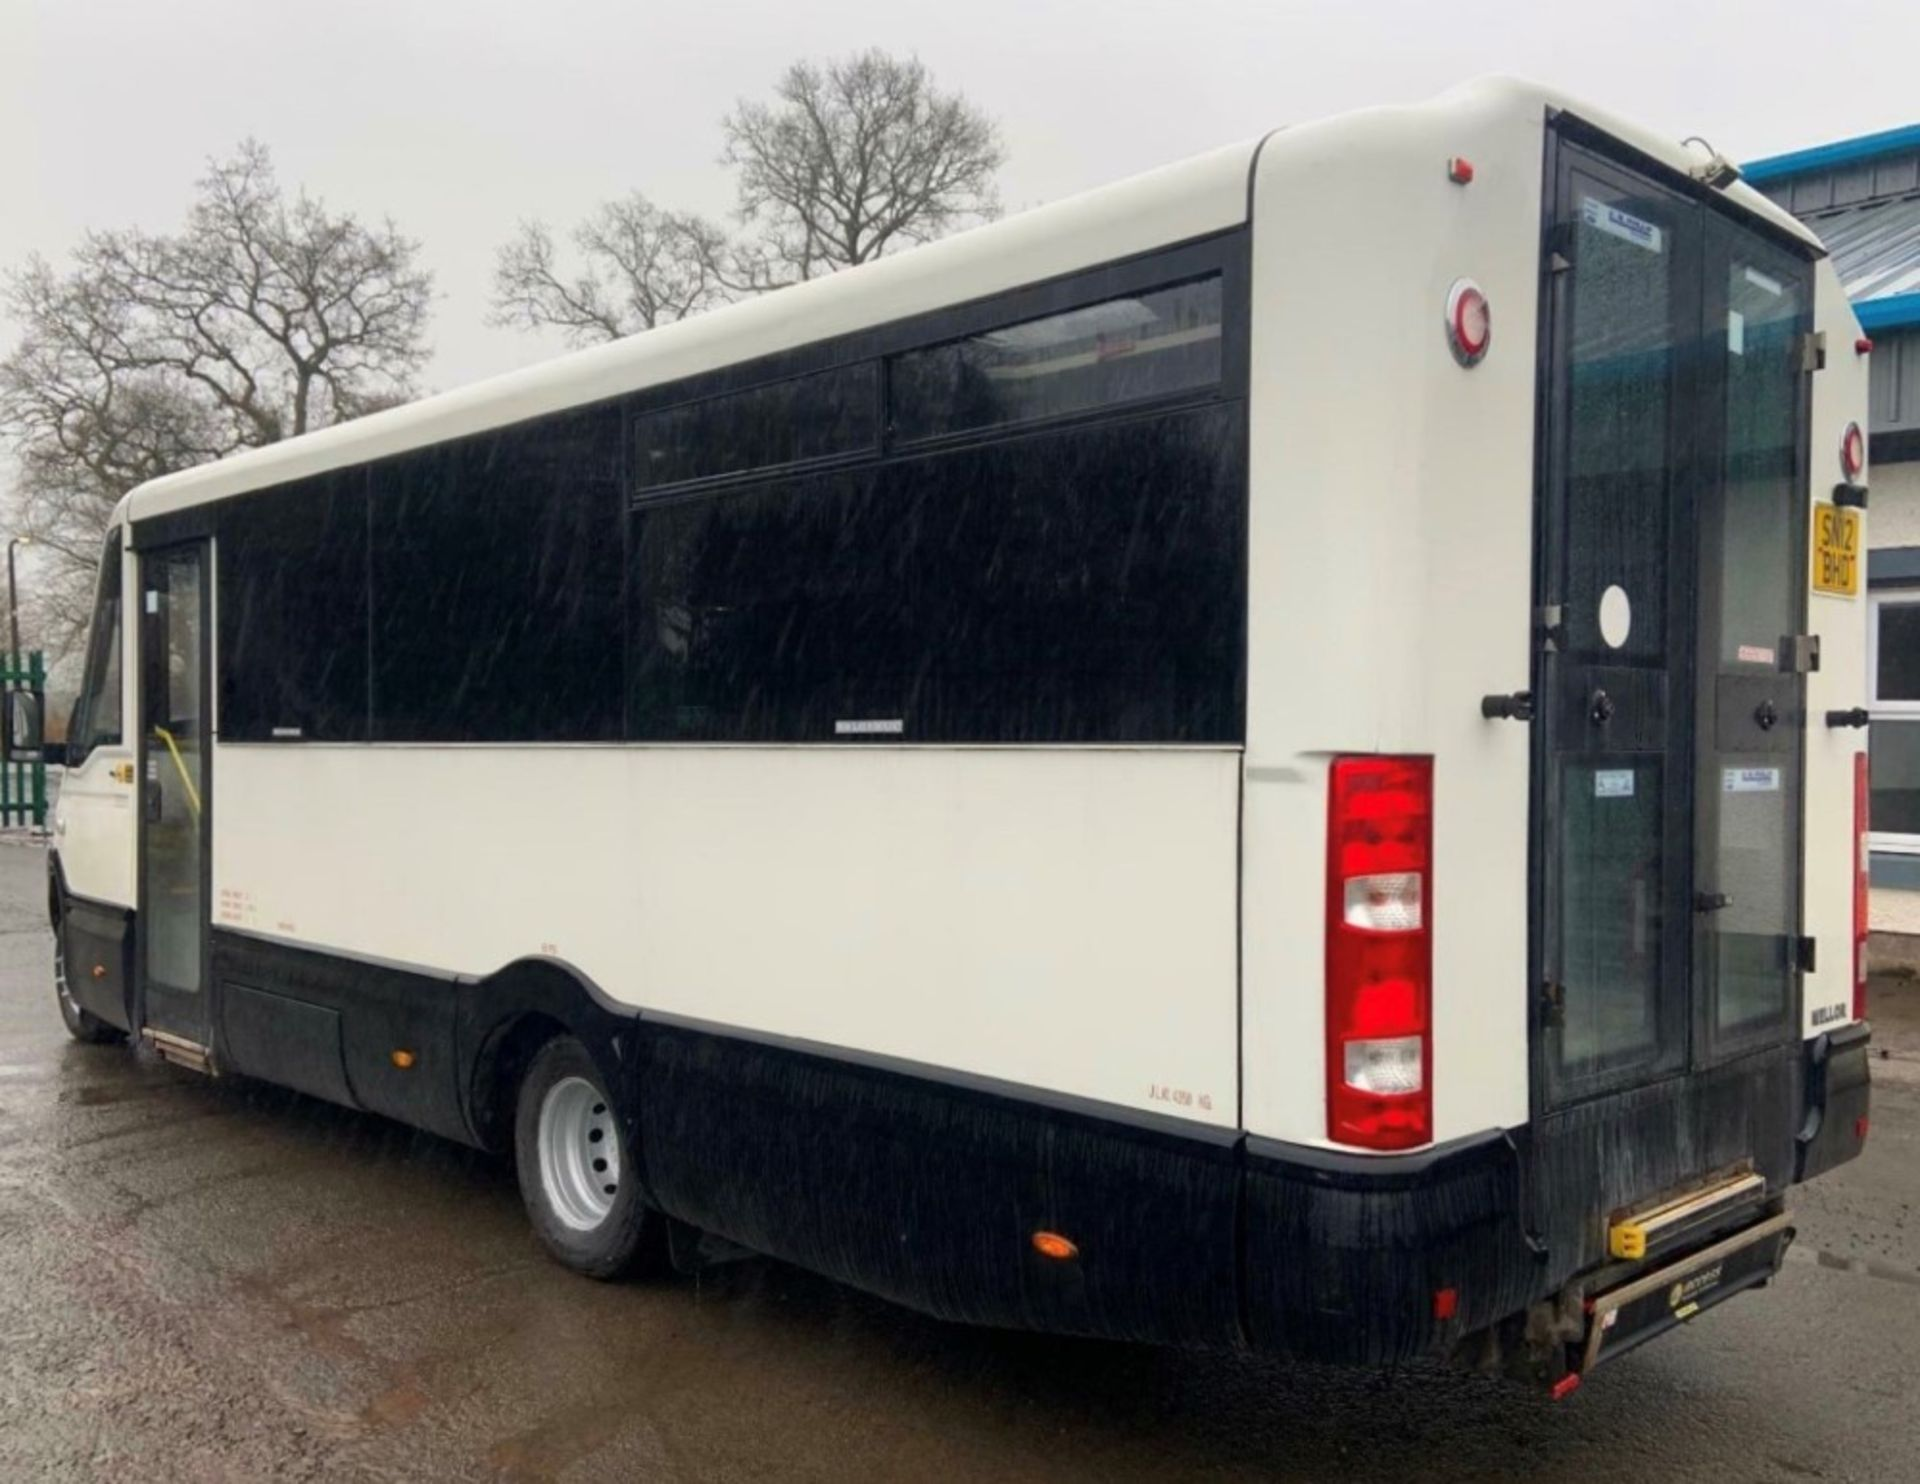 12 reg IRIS DAILY 65C17 MELLOR 11 SEAT BUS (LOCATION DUMFRIES) 1ST REG 05/12, 131454KM [+ VAT] - Image 3 of 6